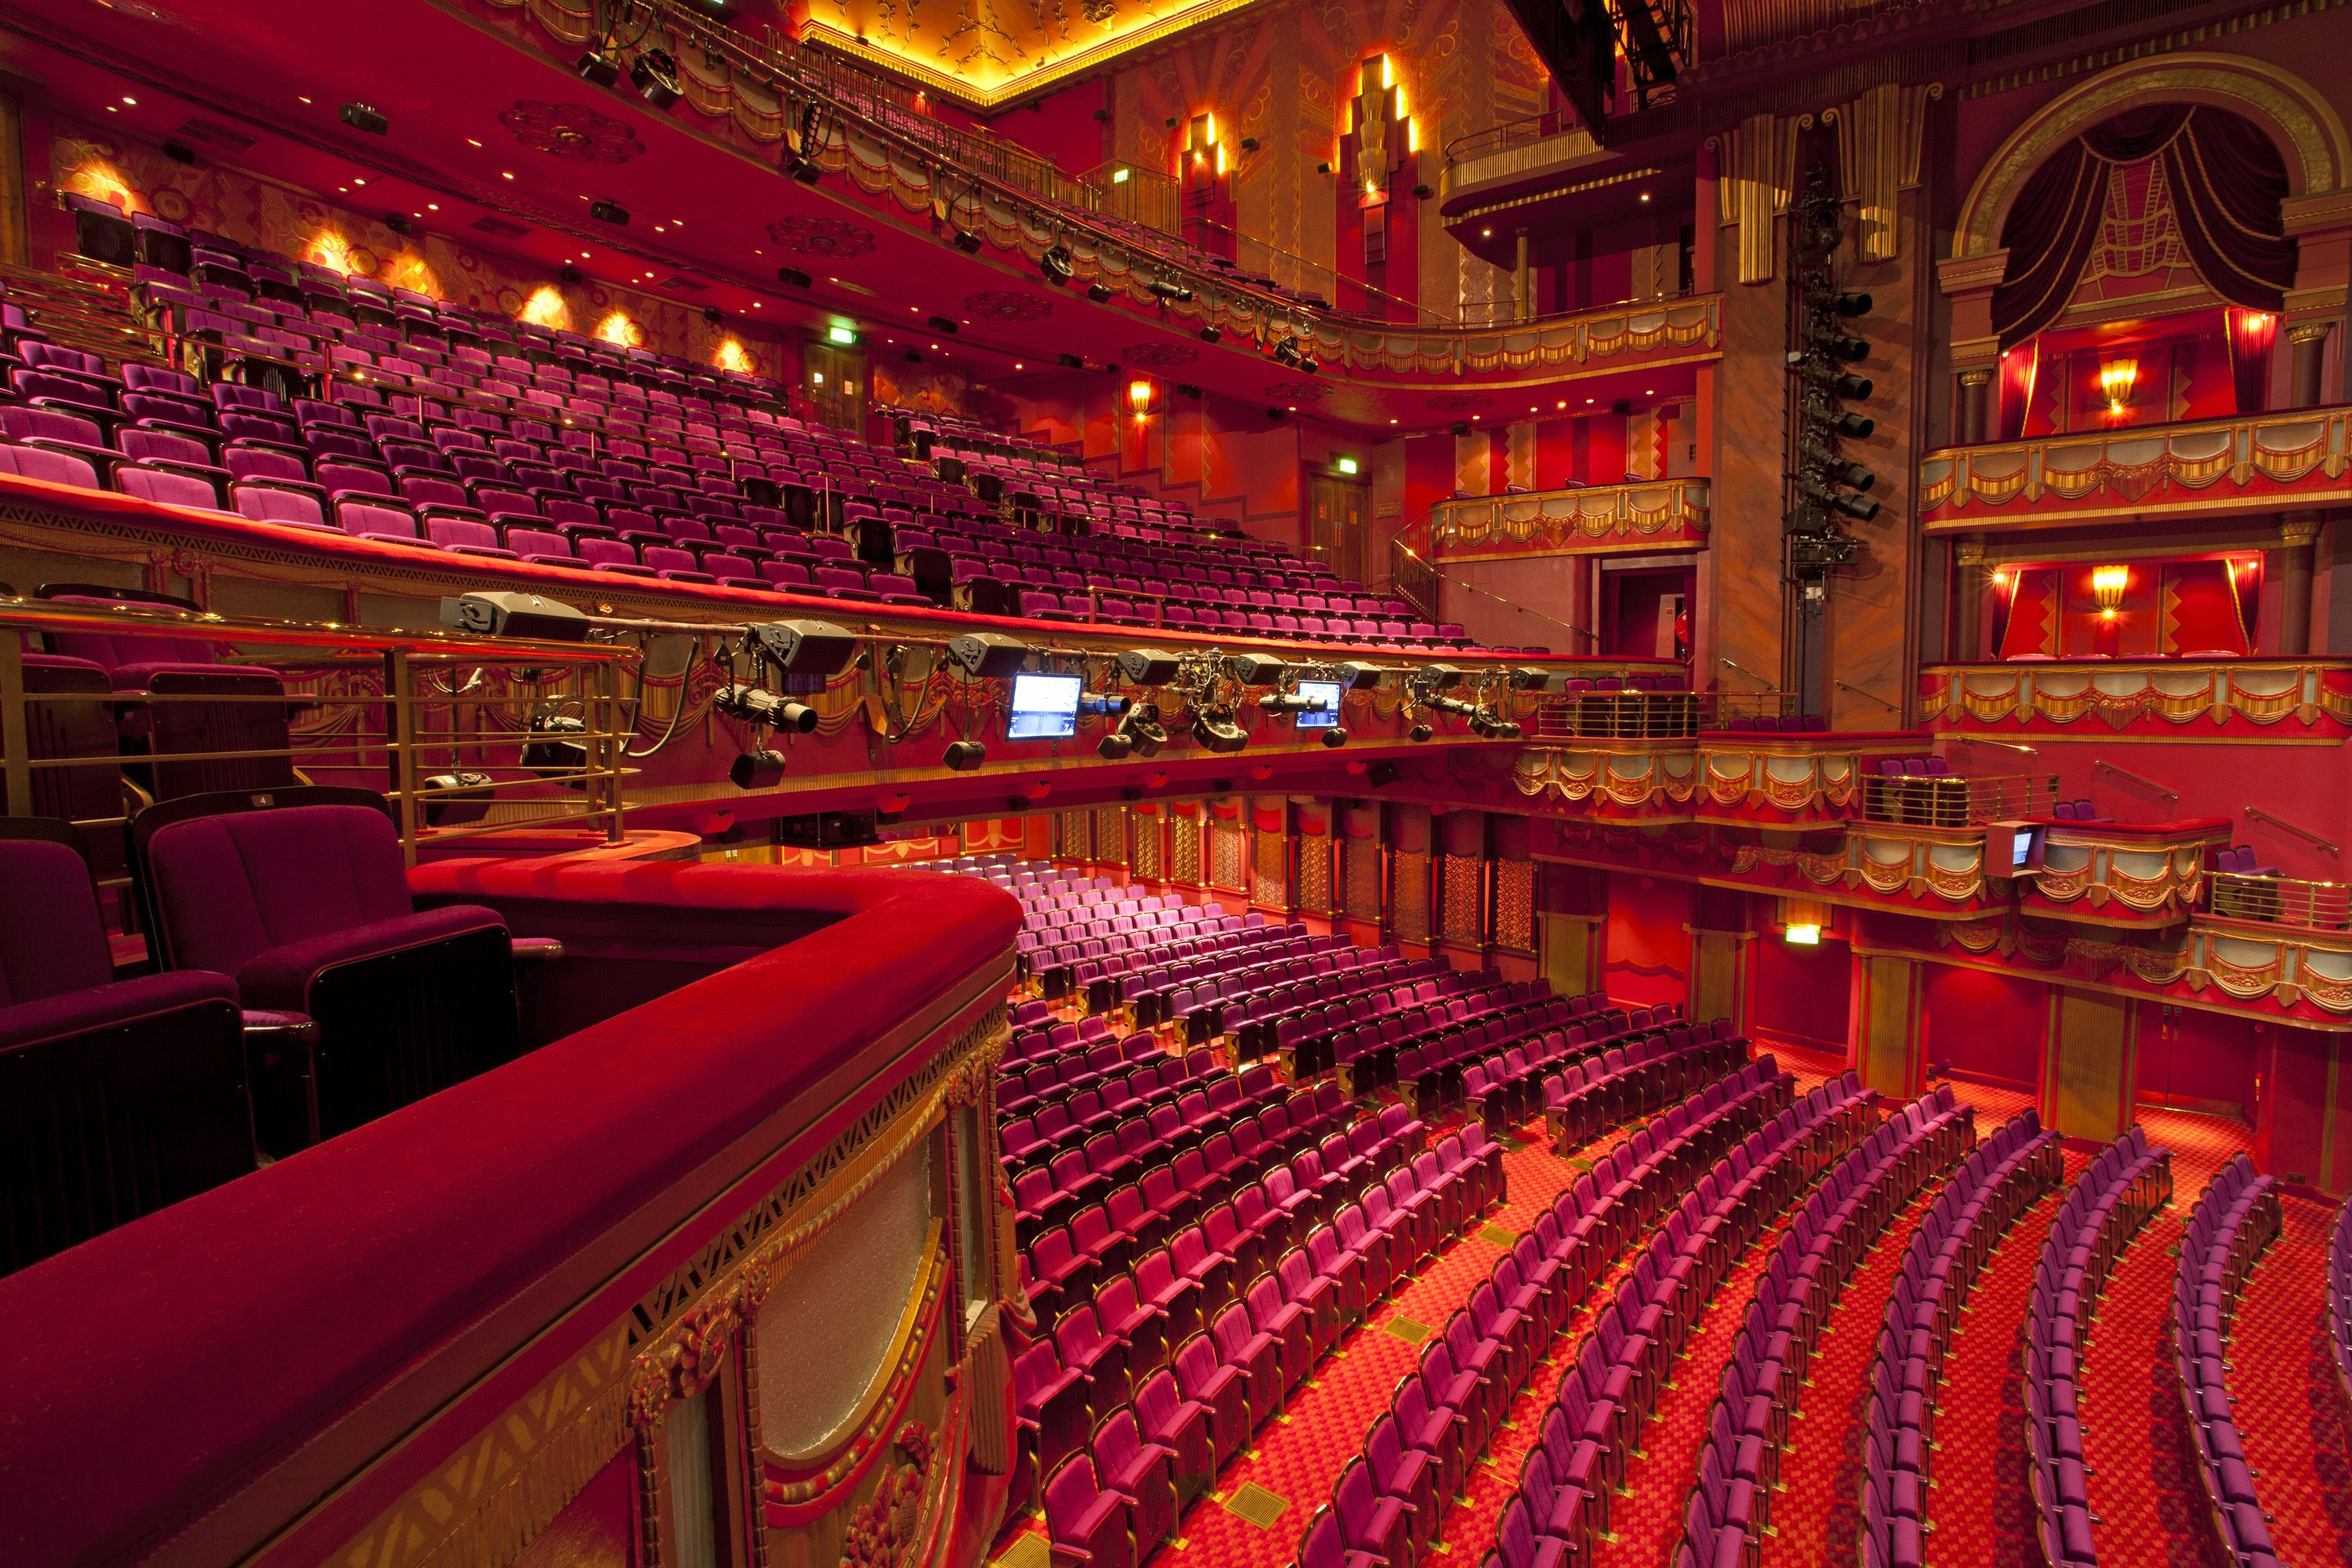 The Simpsons House Plan >> Our chairs in the Prince Edward Theatre, London   Travelling inspiration   Pinterest   Prince ...